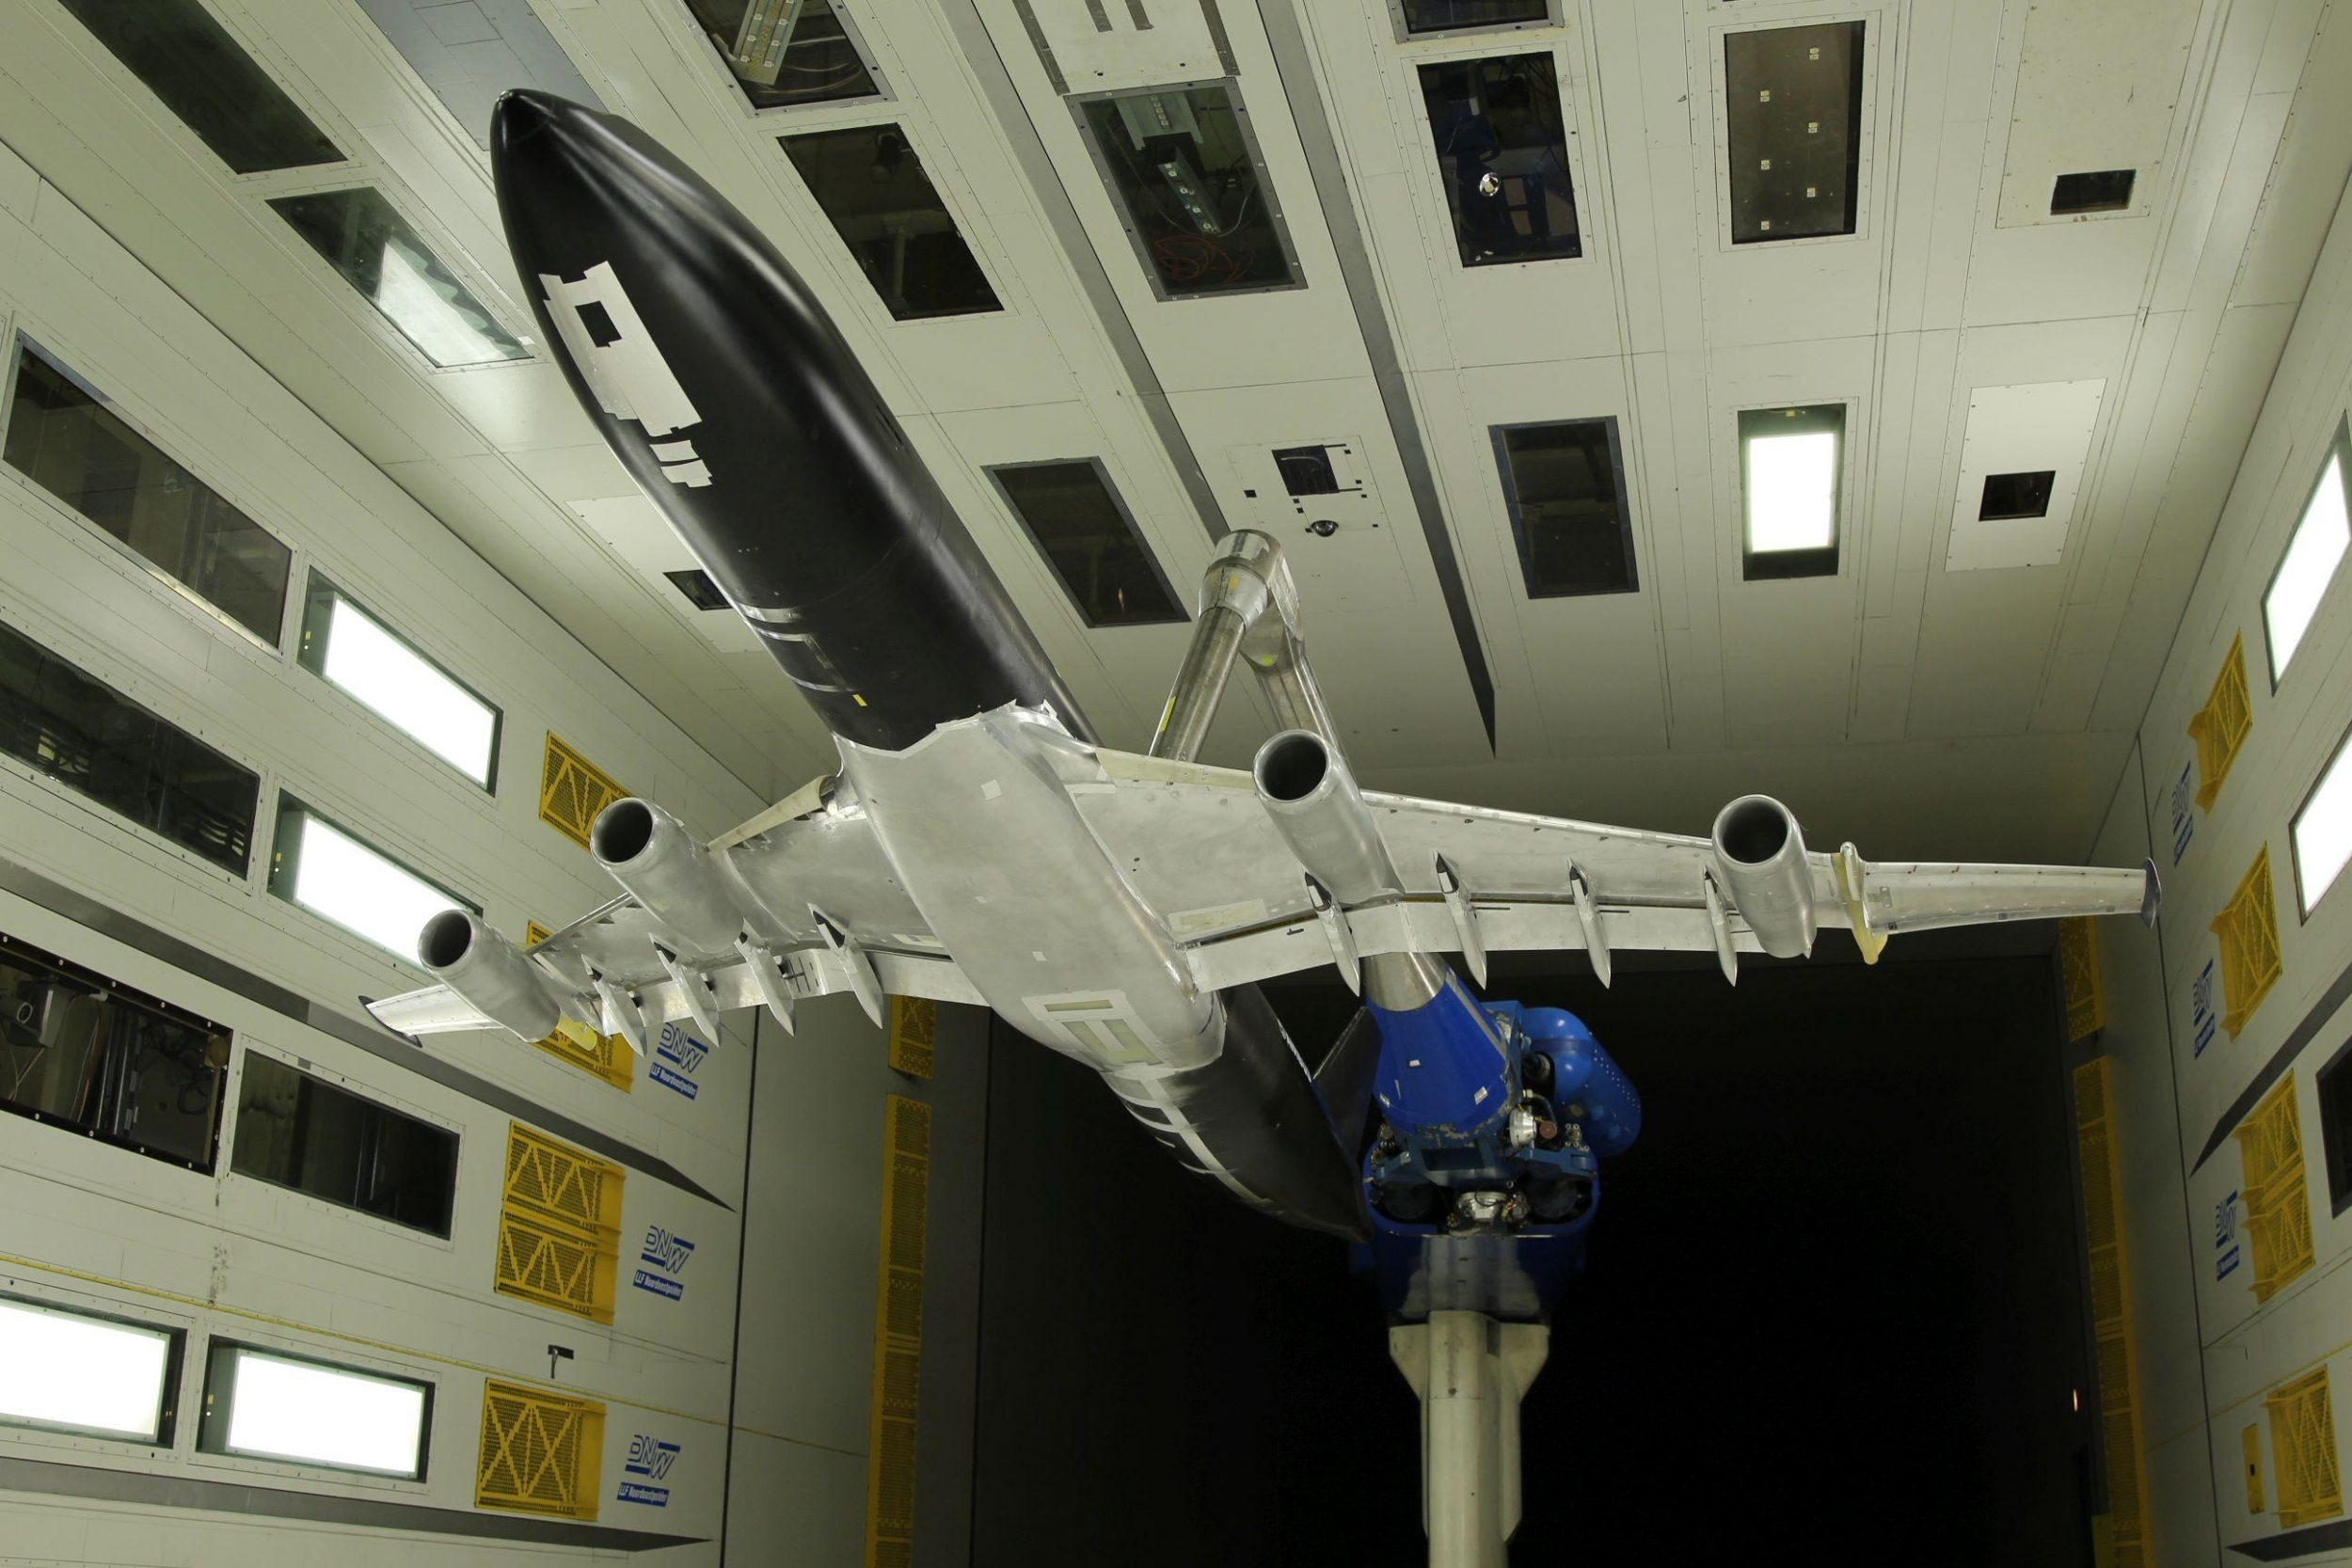 Europe S Aerospace Research Program Enters Demo Phase